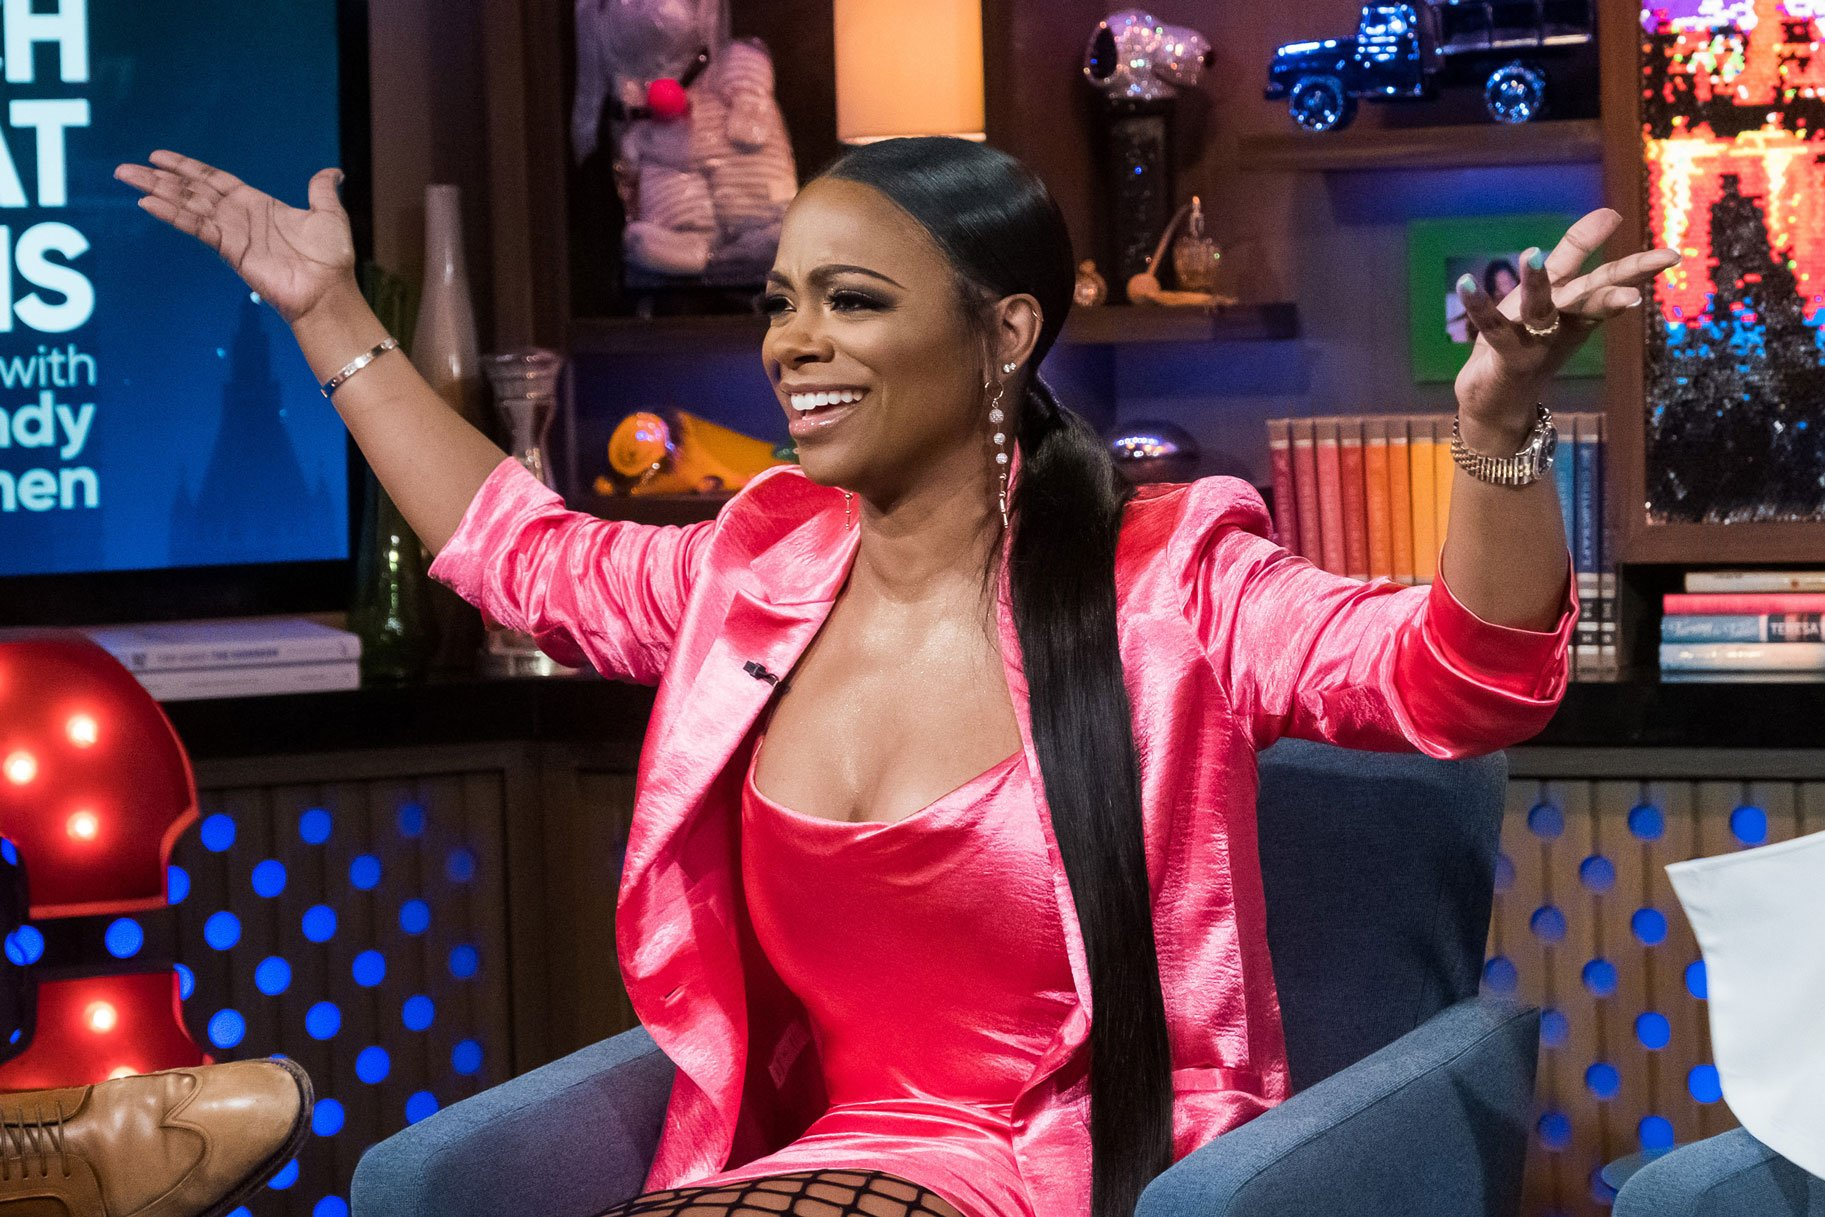 kandi-burruss-makes-fans-happy-with-various-pics-from-ace-tuckers-birthday-party